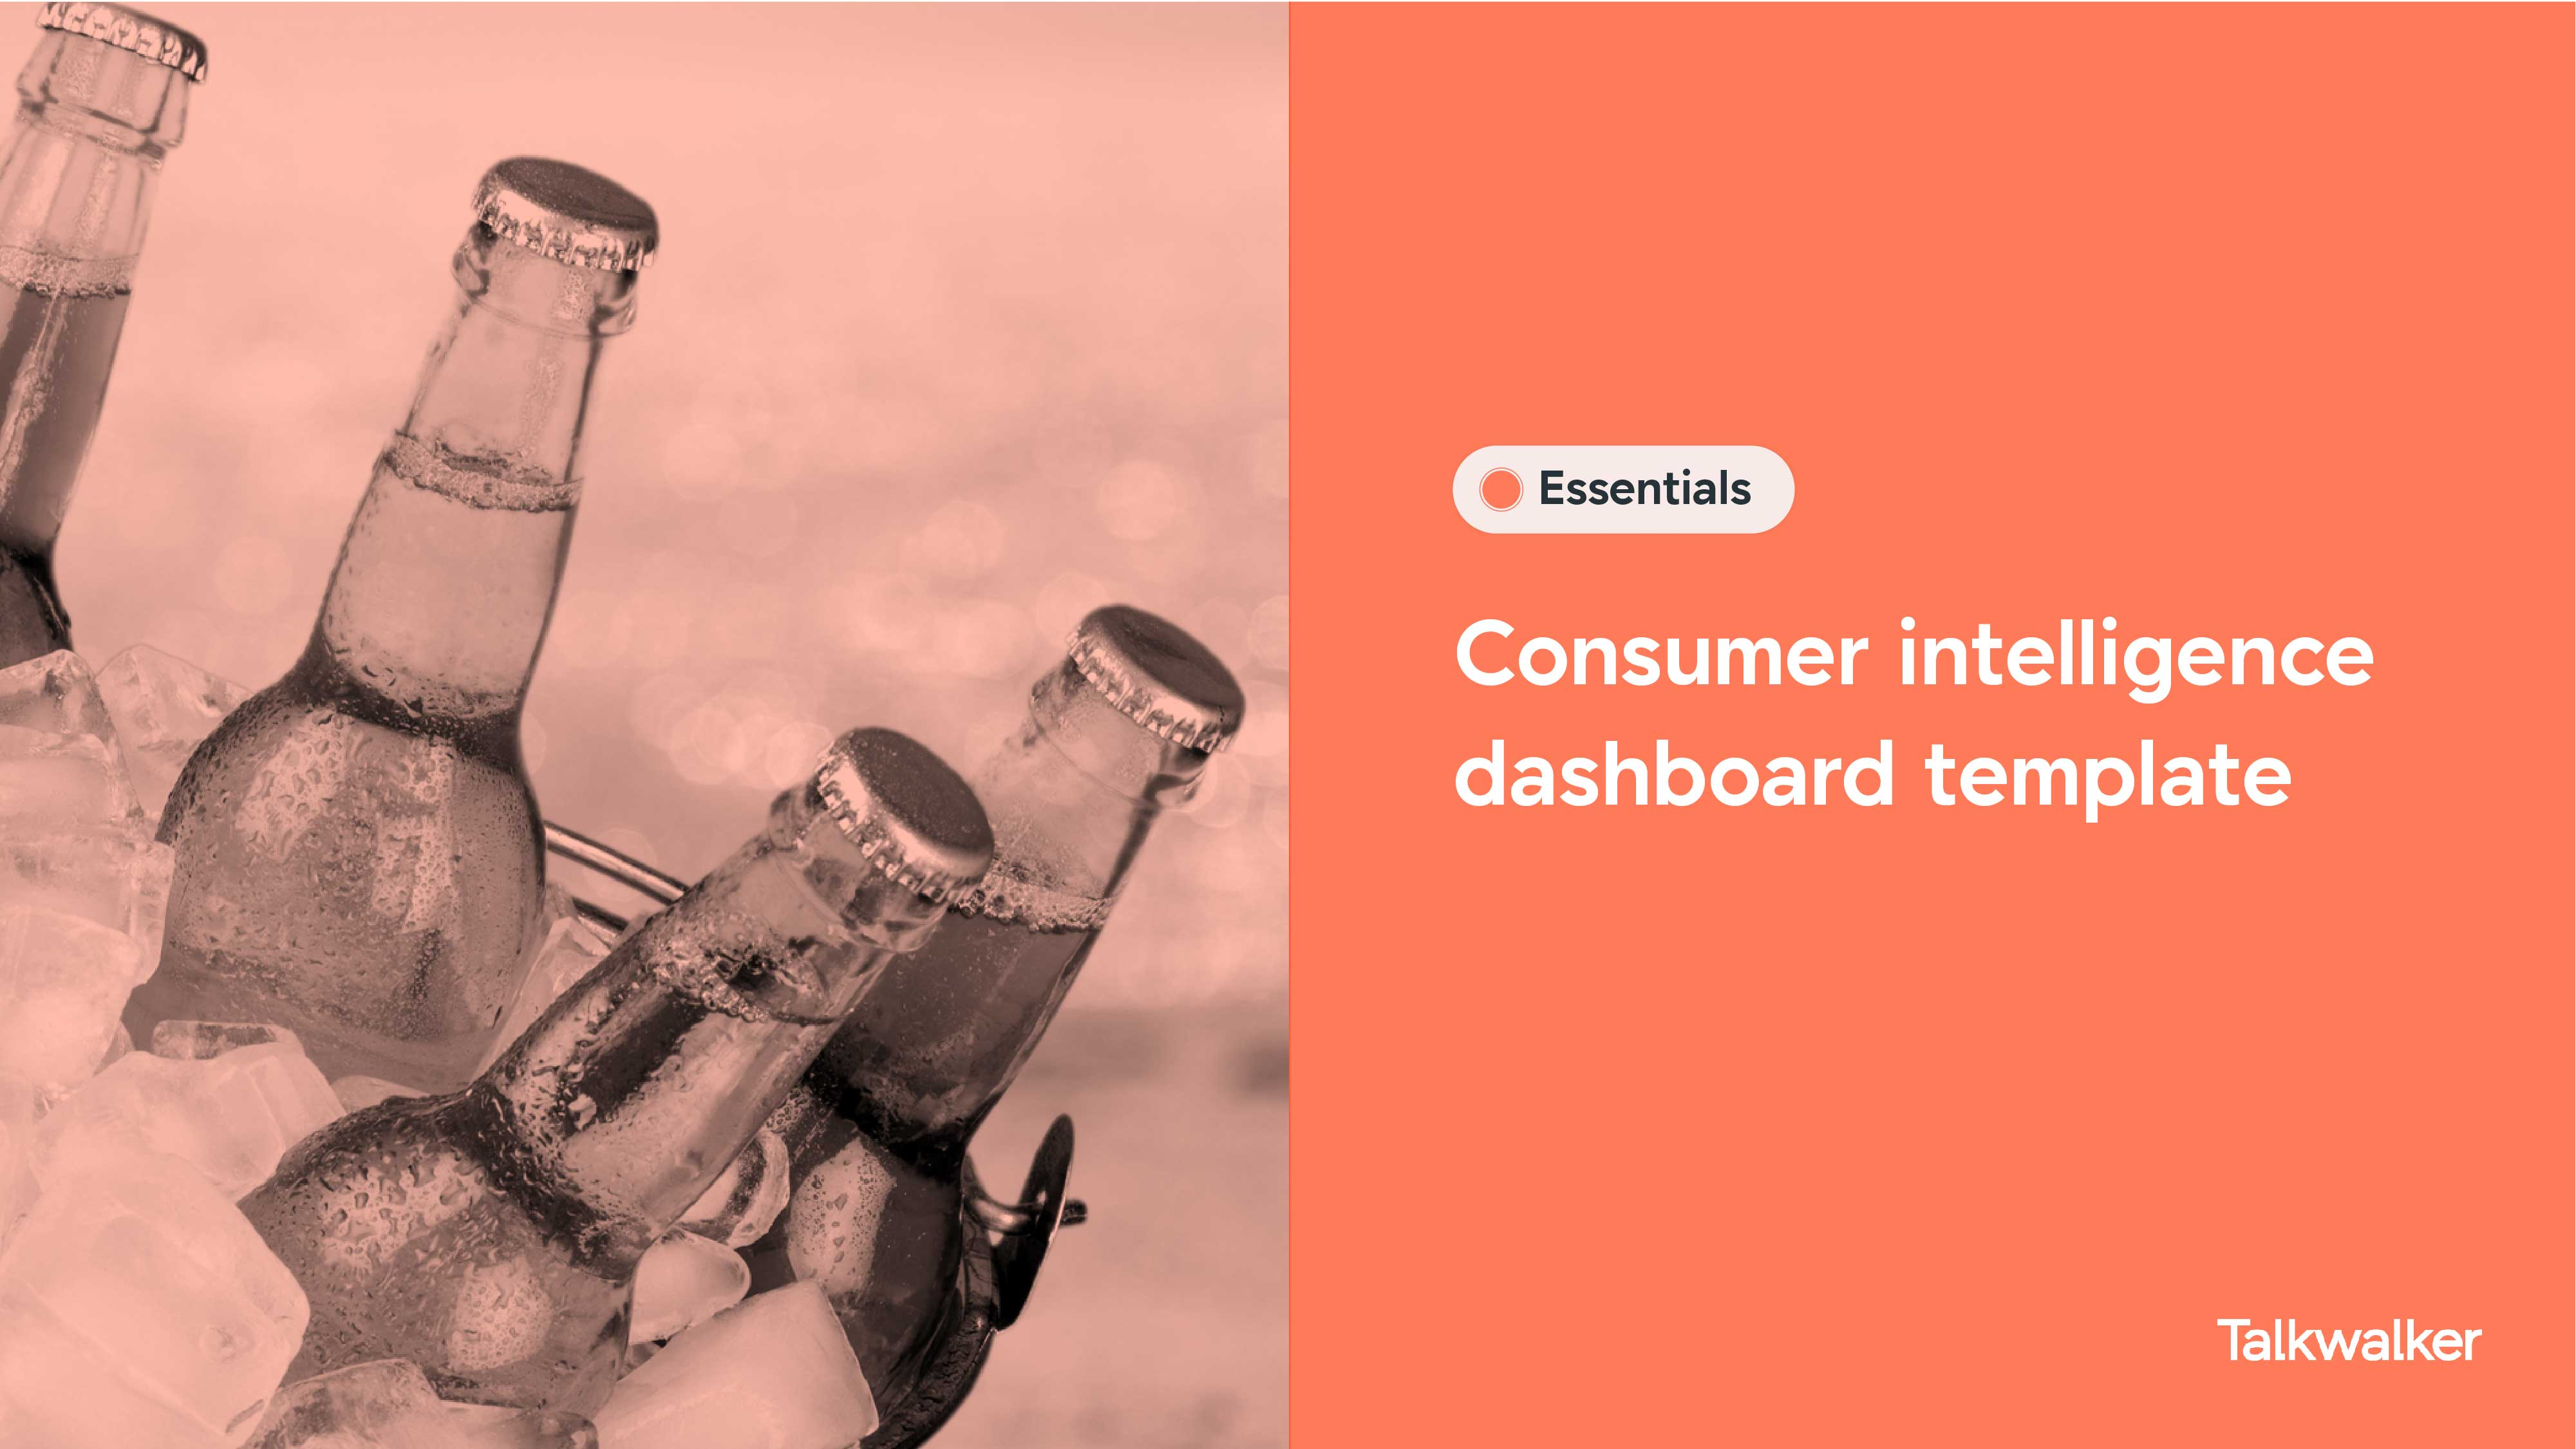 Consumer intelligence dashboard template of soda industry - image of bottles in ice bucket